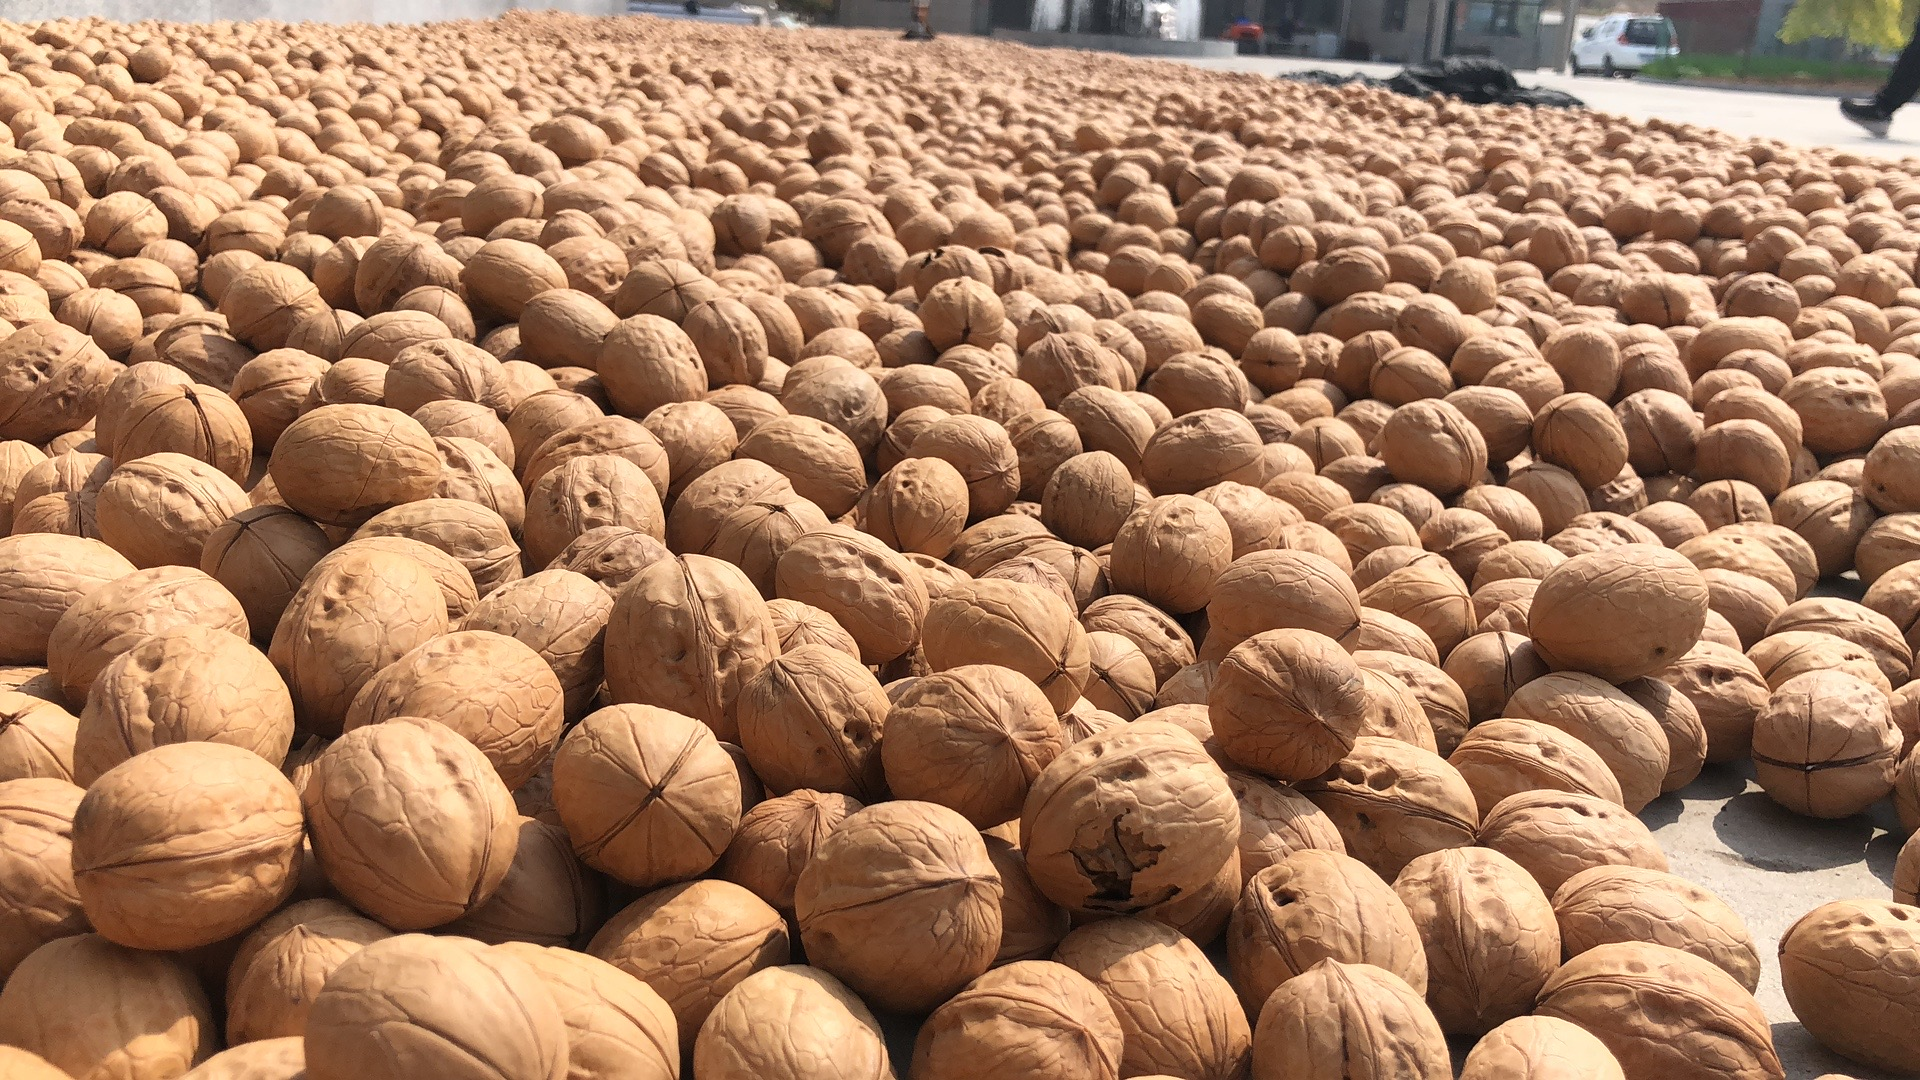 Raw processing type fresh of dried in shell walnuts at low price